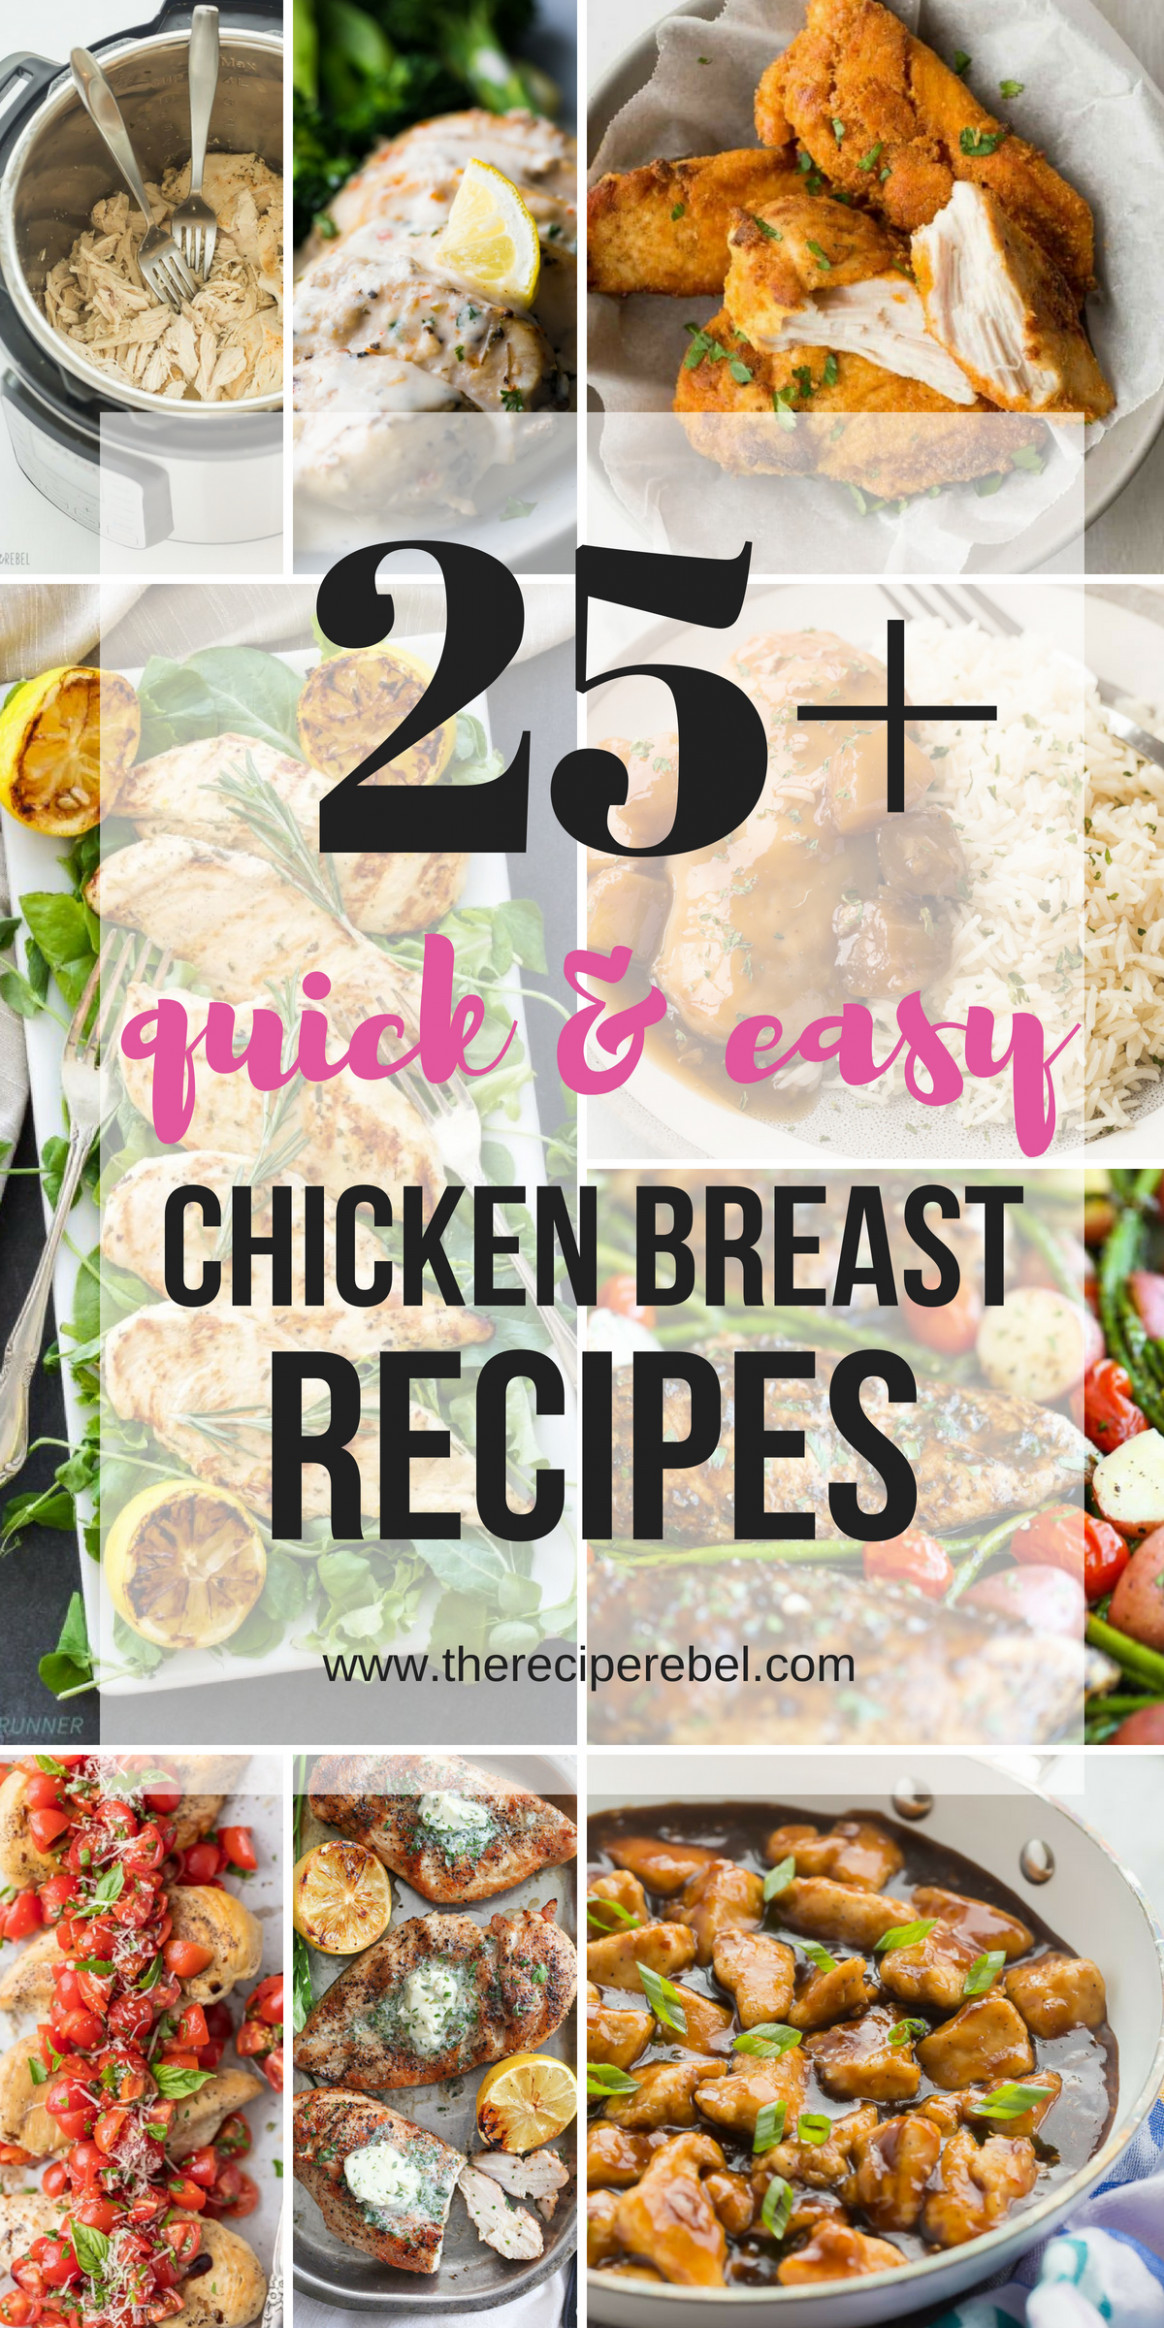 Easy Chicken Breast Recipes - The Recipe Rebel (quick And ..